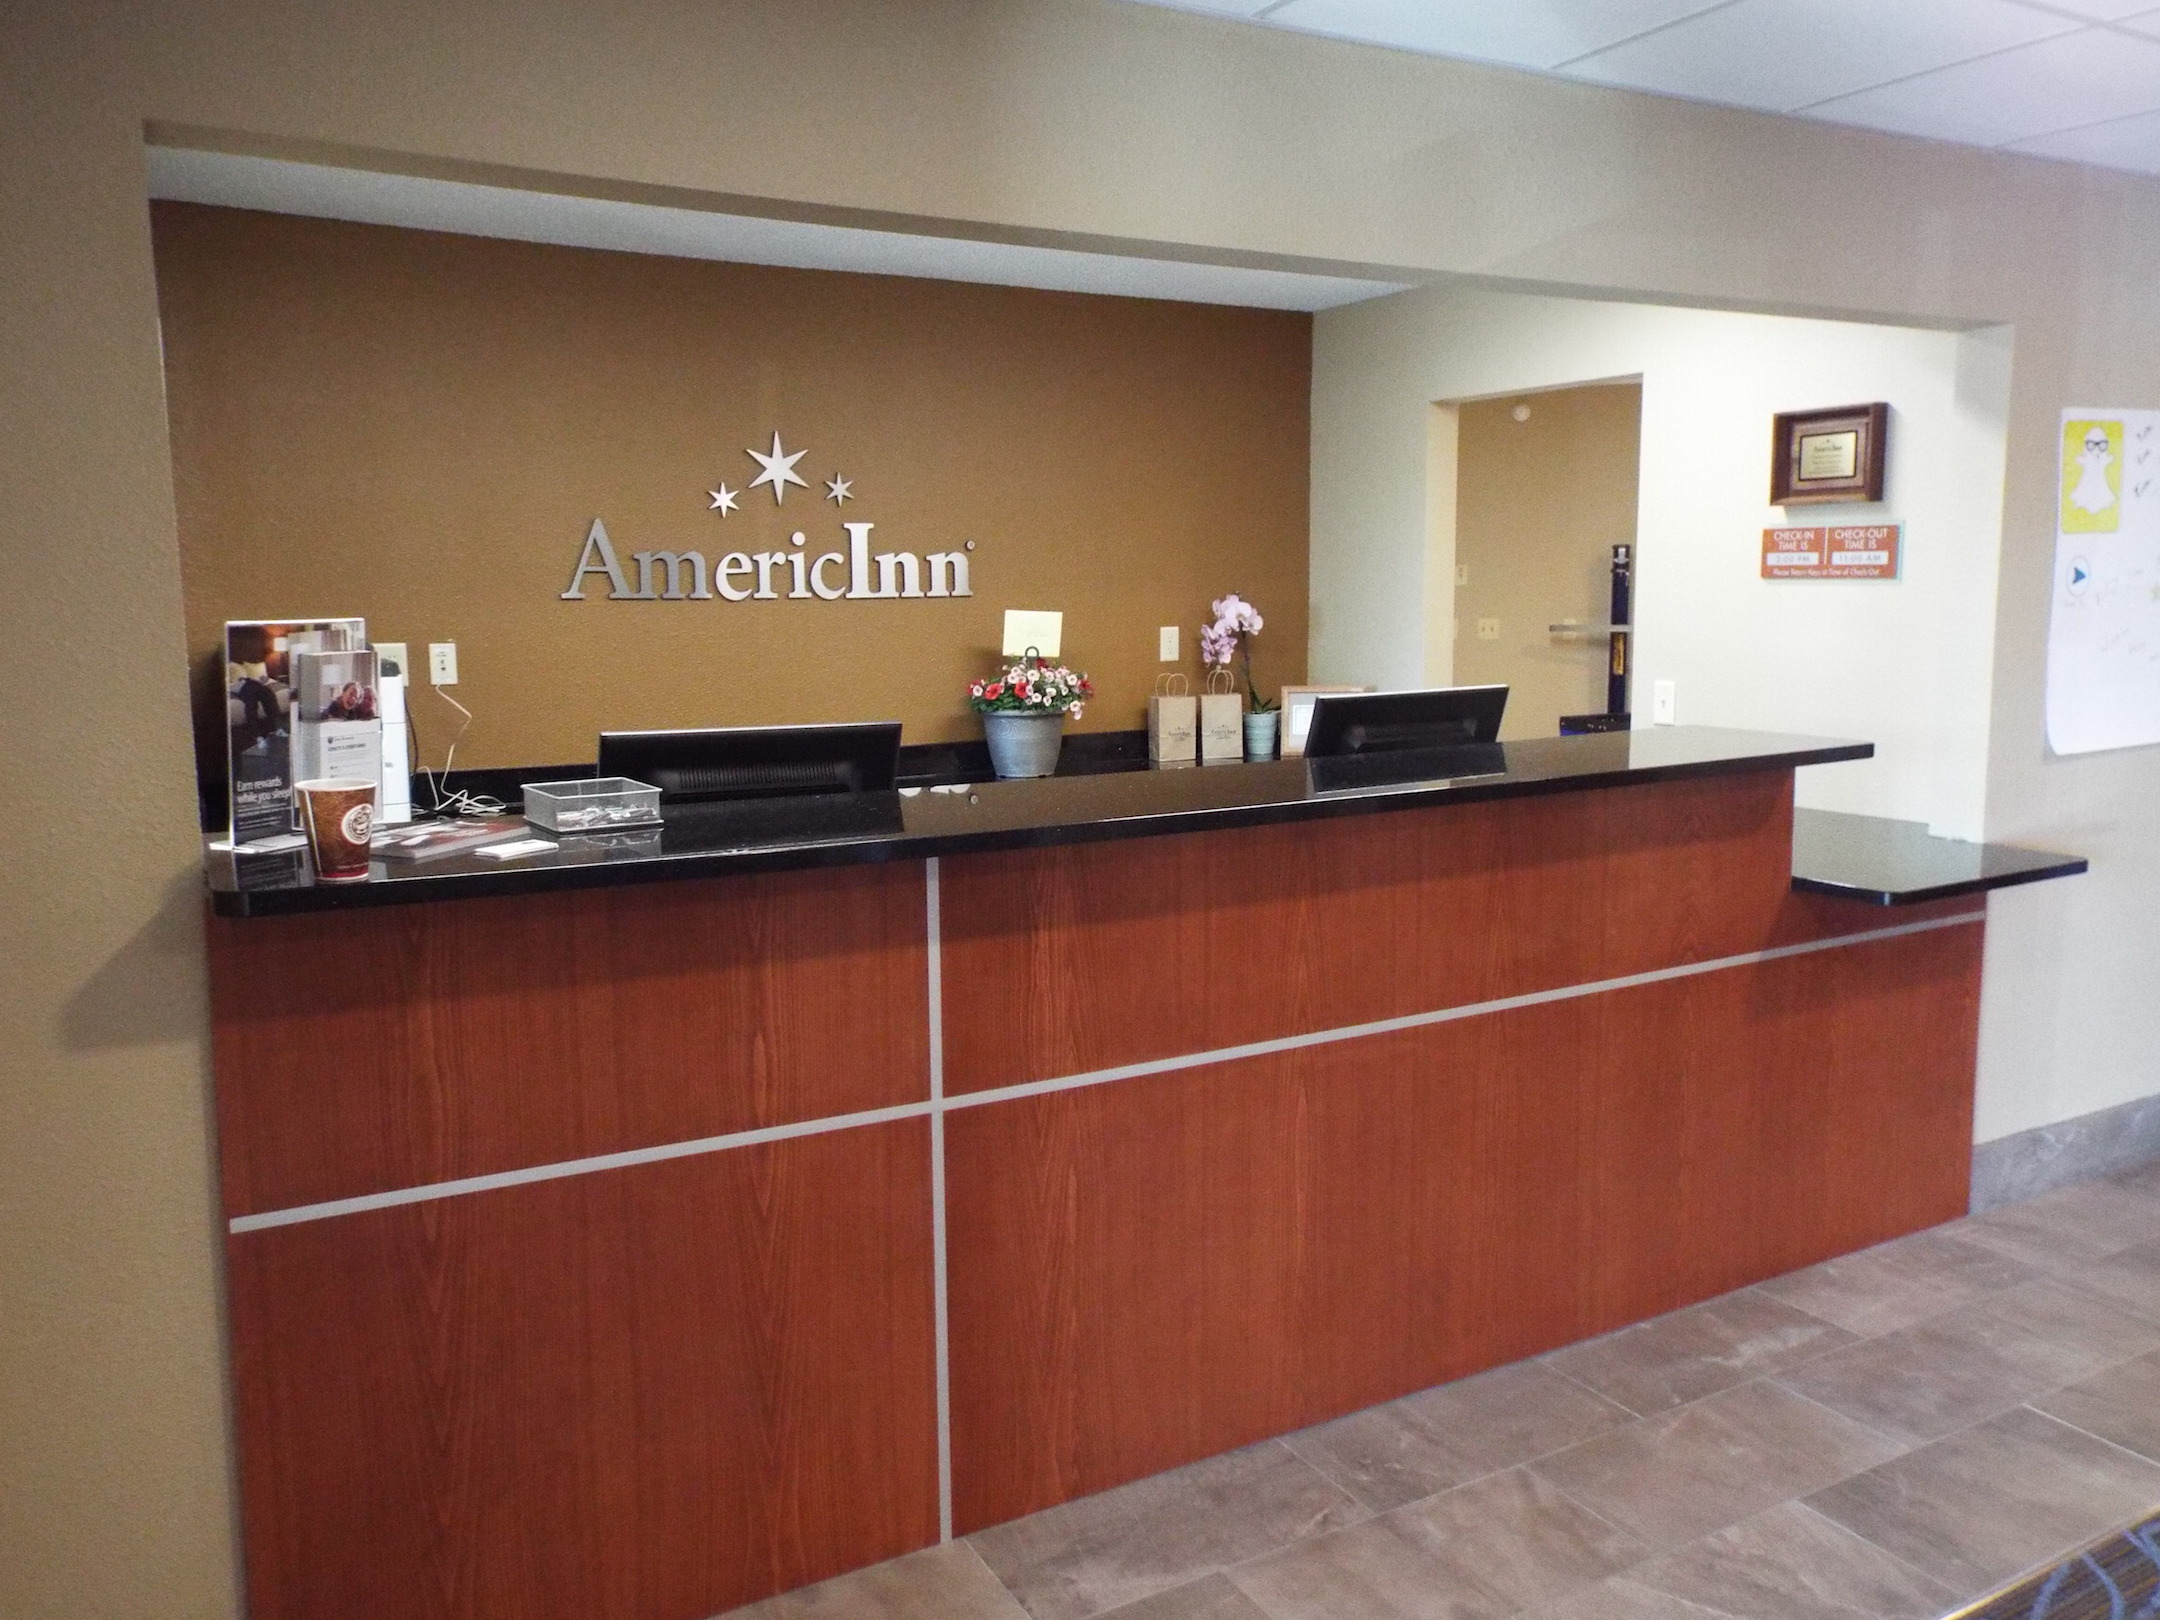 Updated Lobby and reception area of AmericInn that boasts custom architectural millwork and molding by Dras Cases.